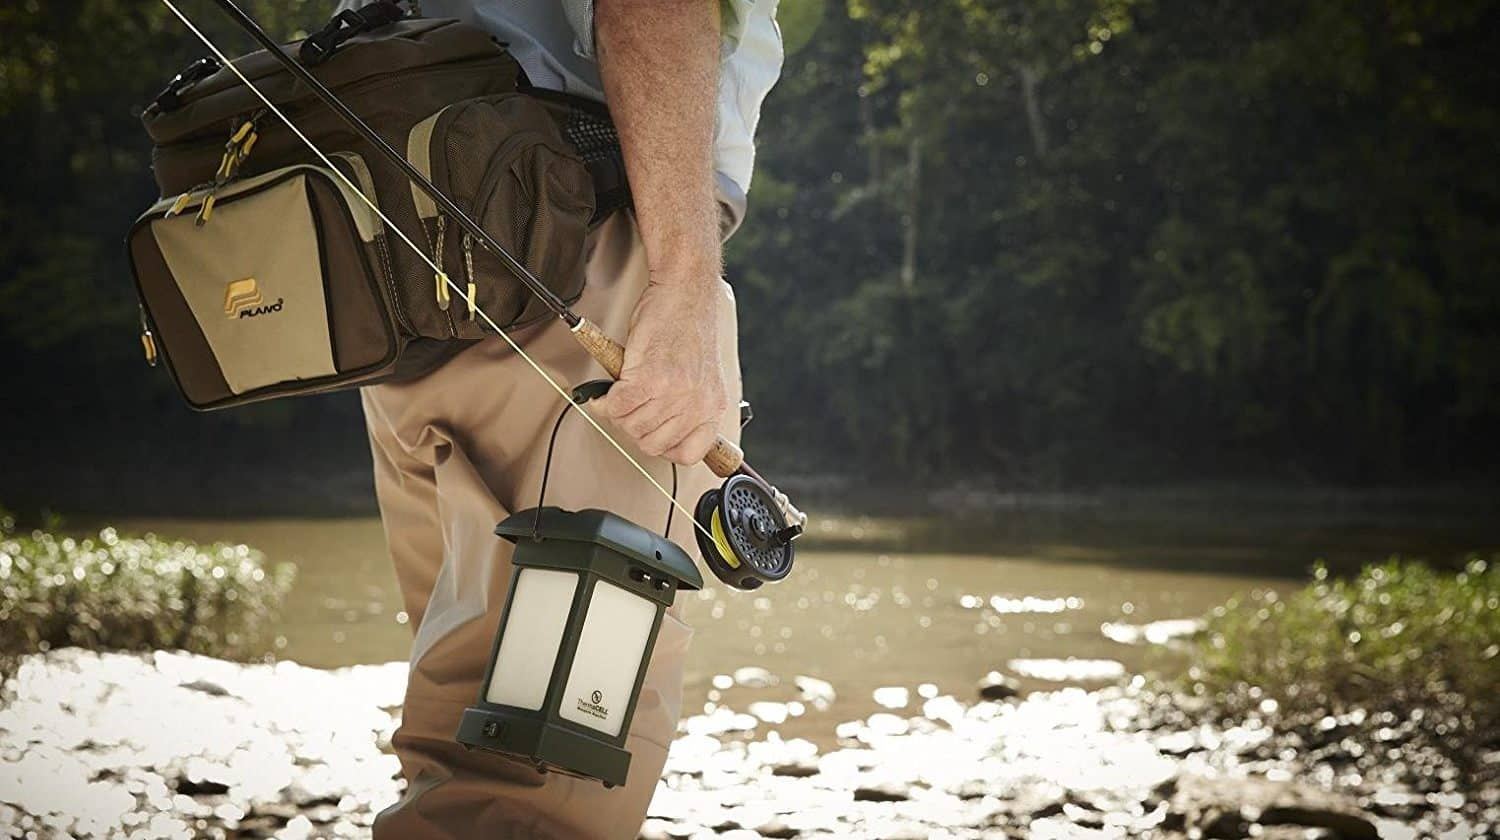 Best Camping Gears & Gadgets for Your Next Camping Trip